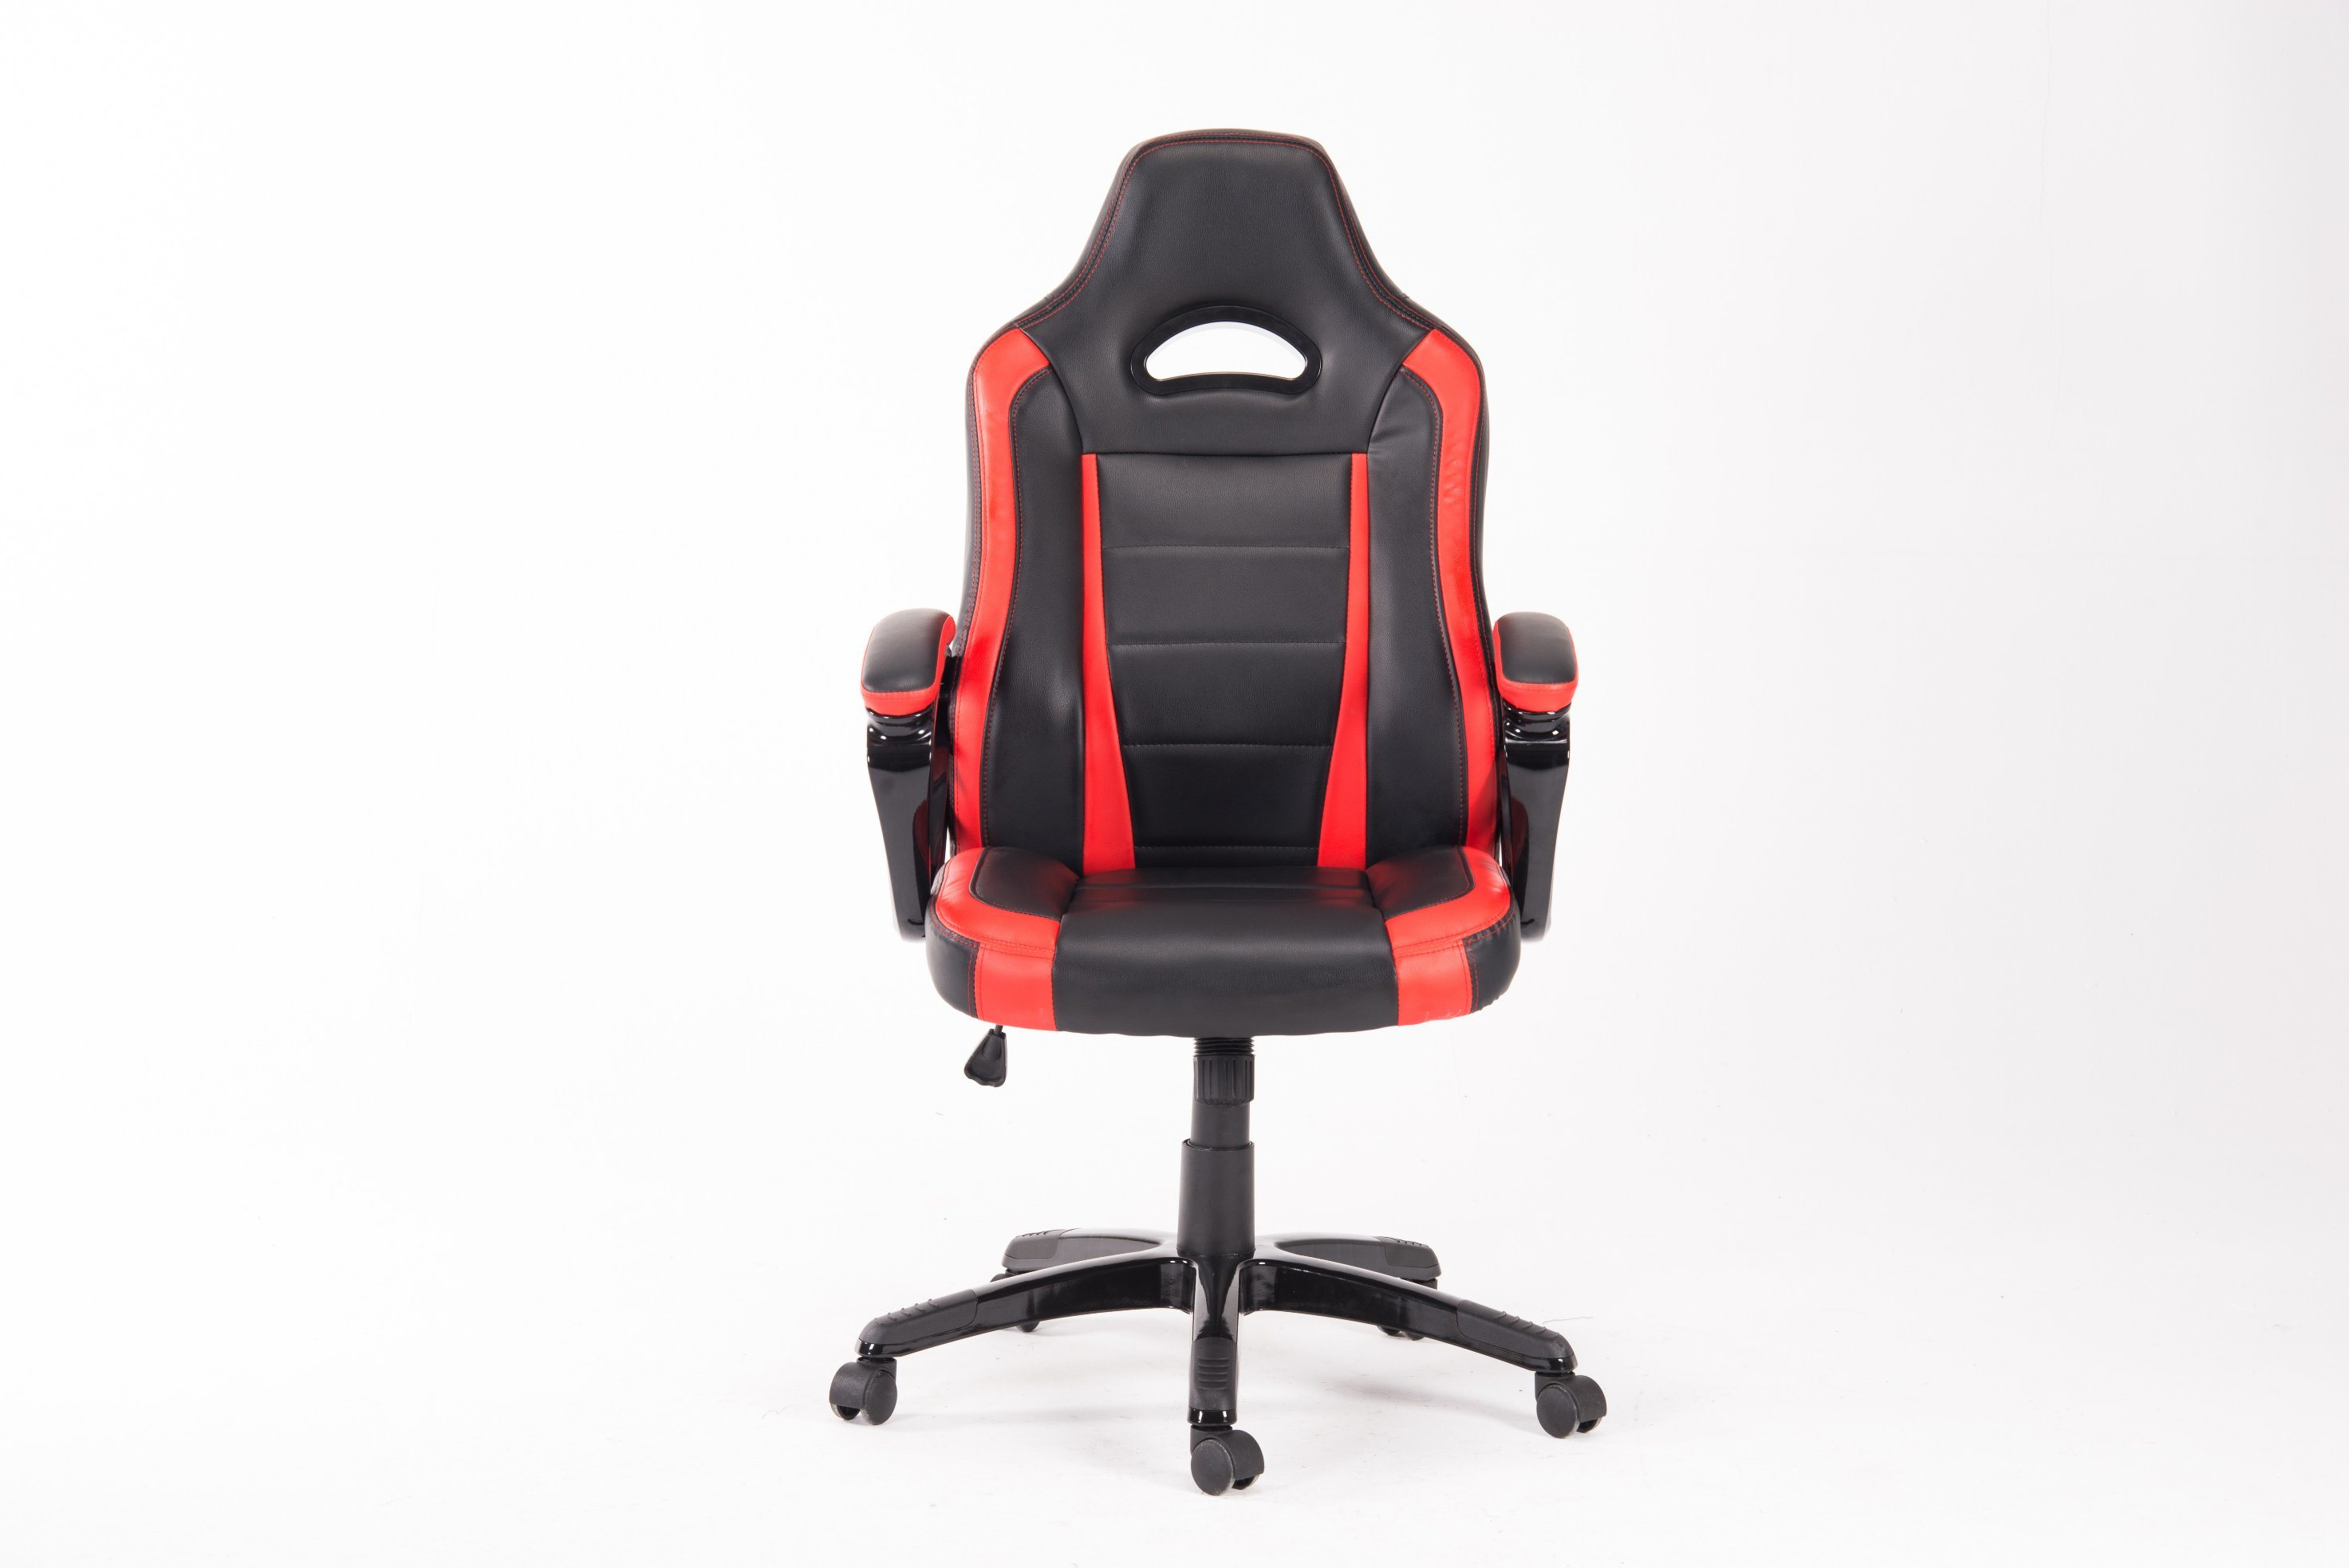 Zero Gravity Office Chair Hot Item Customize Colorful Zero Gravity Computer Racing Gaming Chair Popular In Office